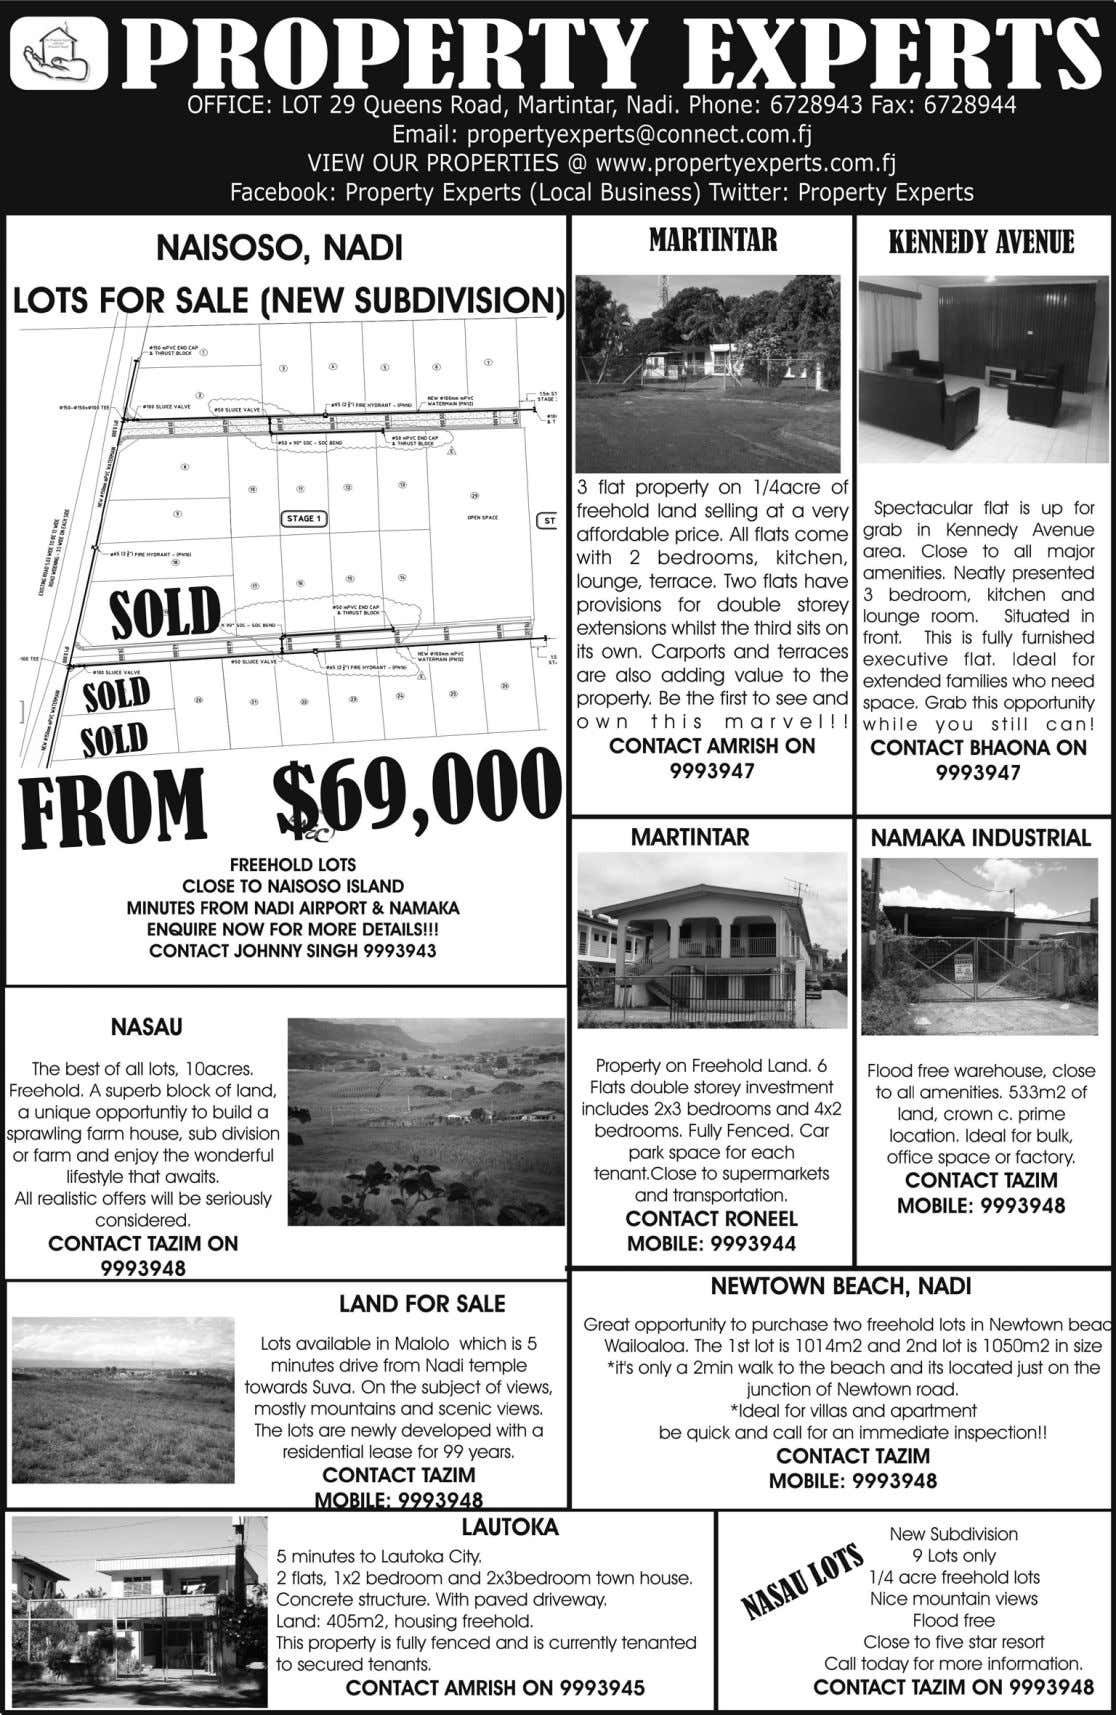 www.thejetnewspaper.com ADVERTISEMENT www.epapergallery.com THE JET - FIJI'S FIRST COMMUNITY NEWSPAPER 2